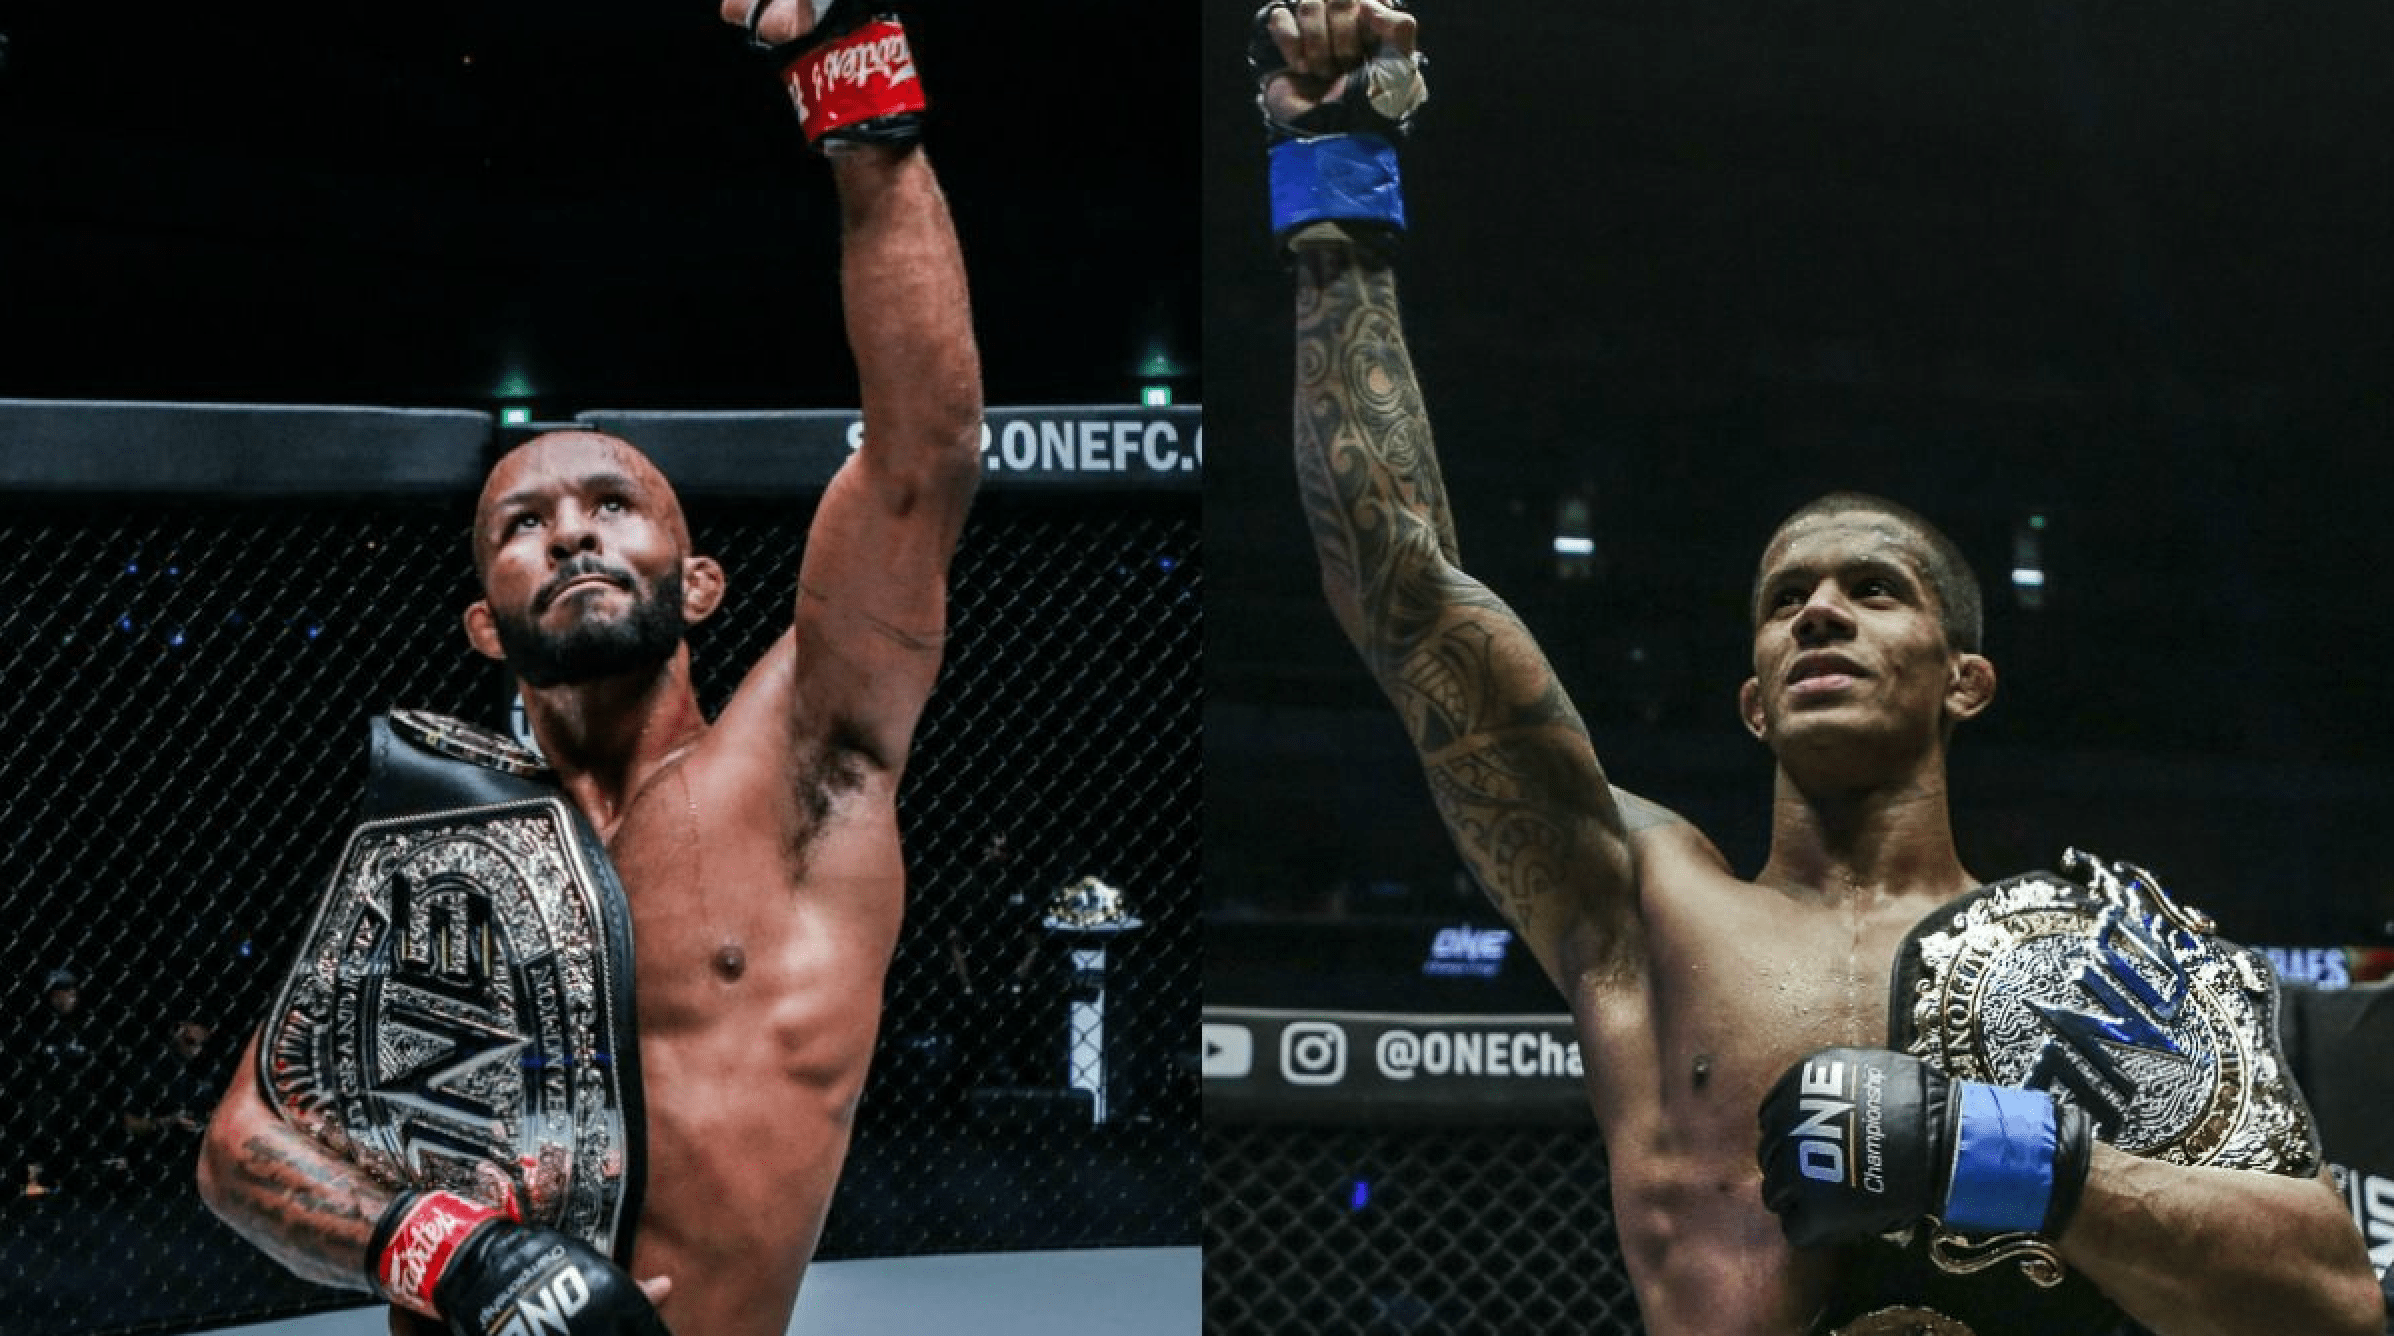 Adriano Moraes vs Demetrious Johnson Gets Relocated From China